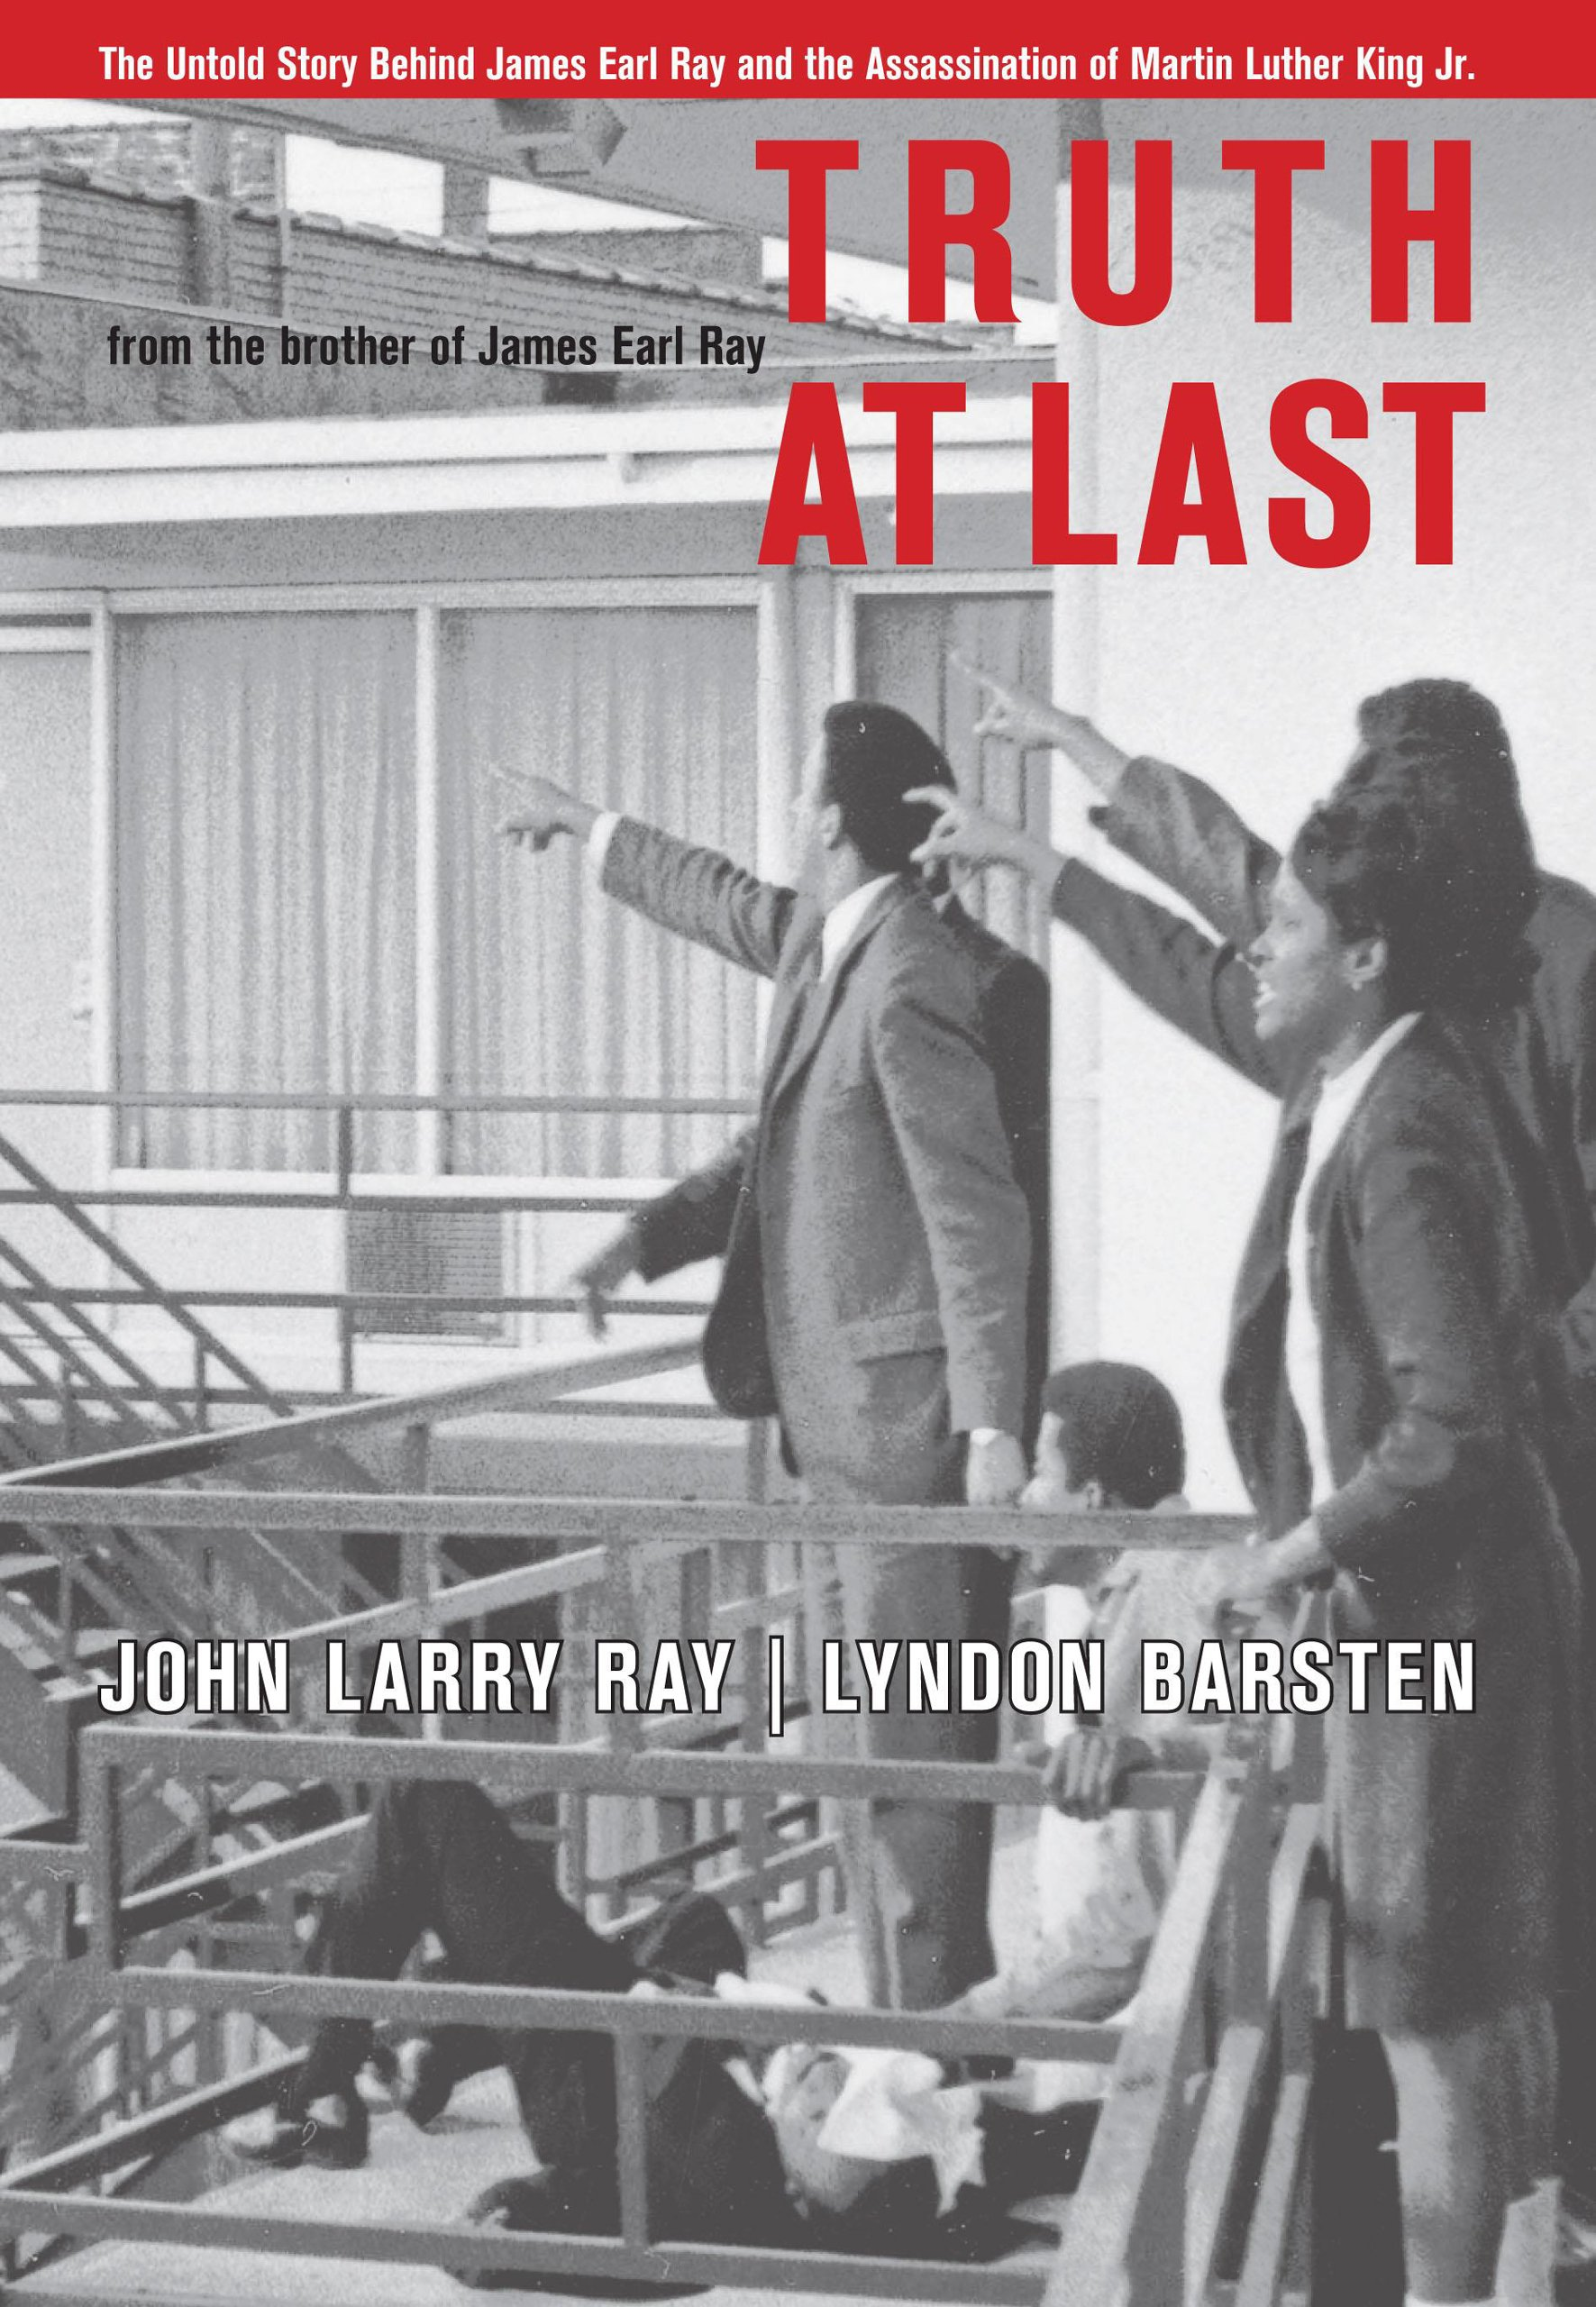 Truth At Last The Untold Story Behind James Earl Ray And The Assassination Of Martin Luther King Jr Ray John Larry Barsten Lyndon 9781599212845 Amazon Com Books